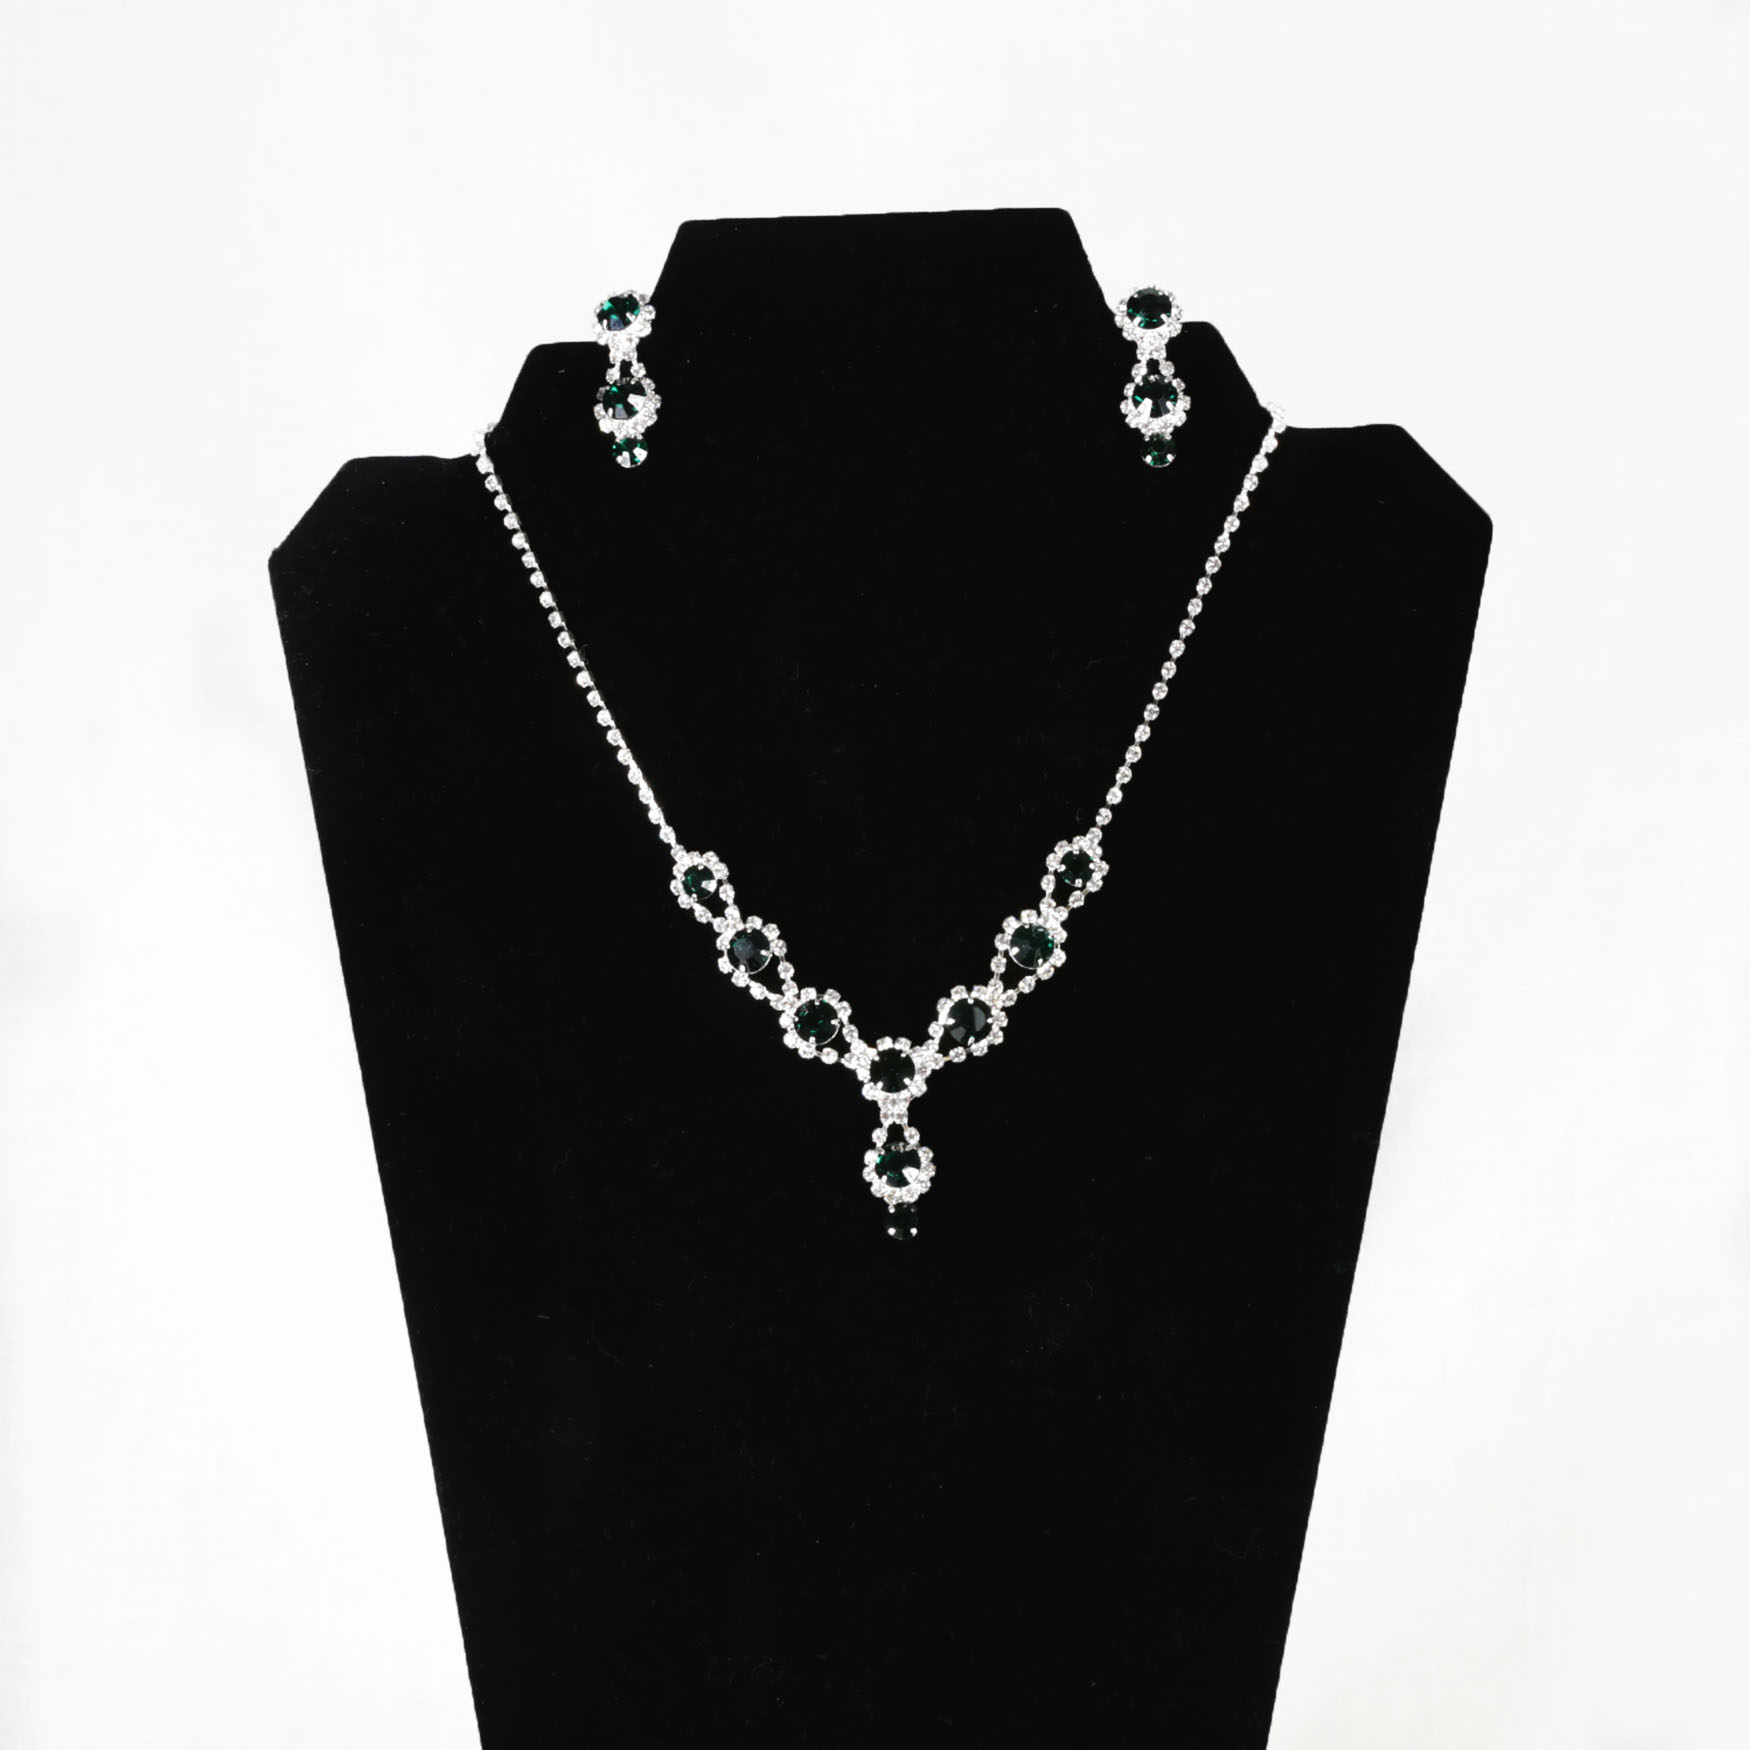 Christina Collection - Necklace Earrings Jewelry | Forget Me Not Boutique Chicago